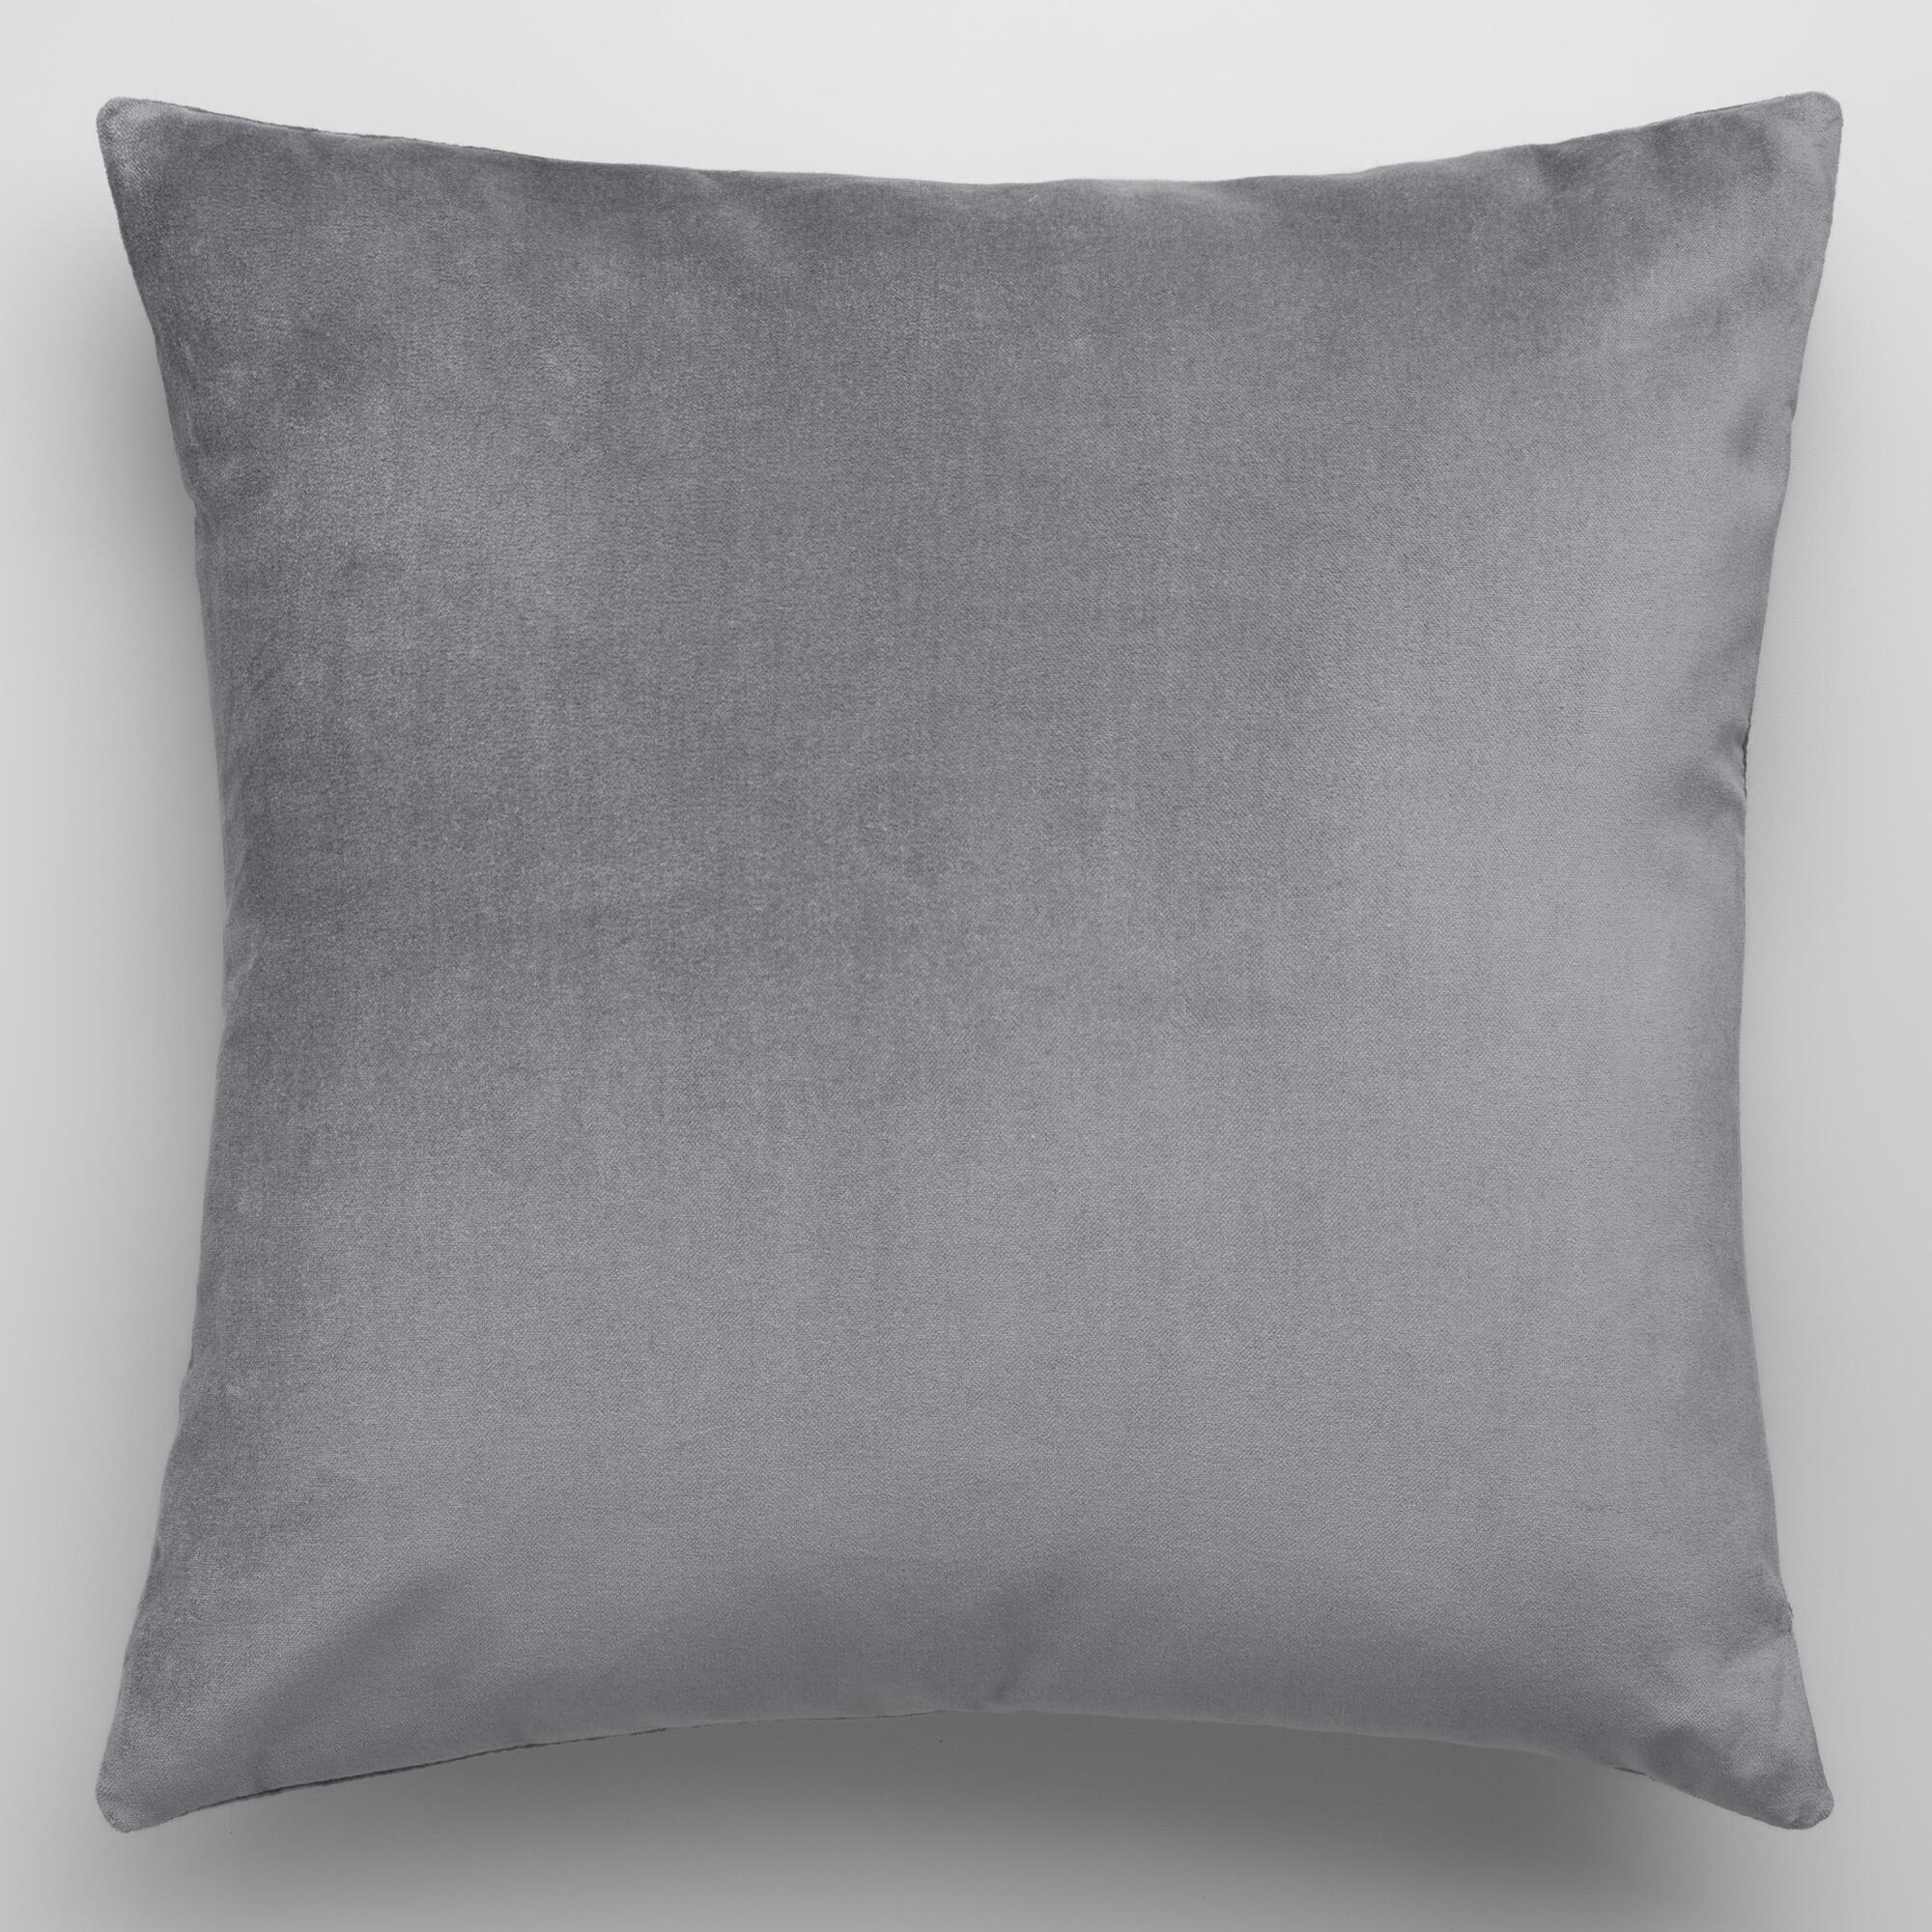 Gray Throw Pillows For Bed : Tornado Gray Velvet Throw Pillow World Market